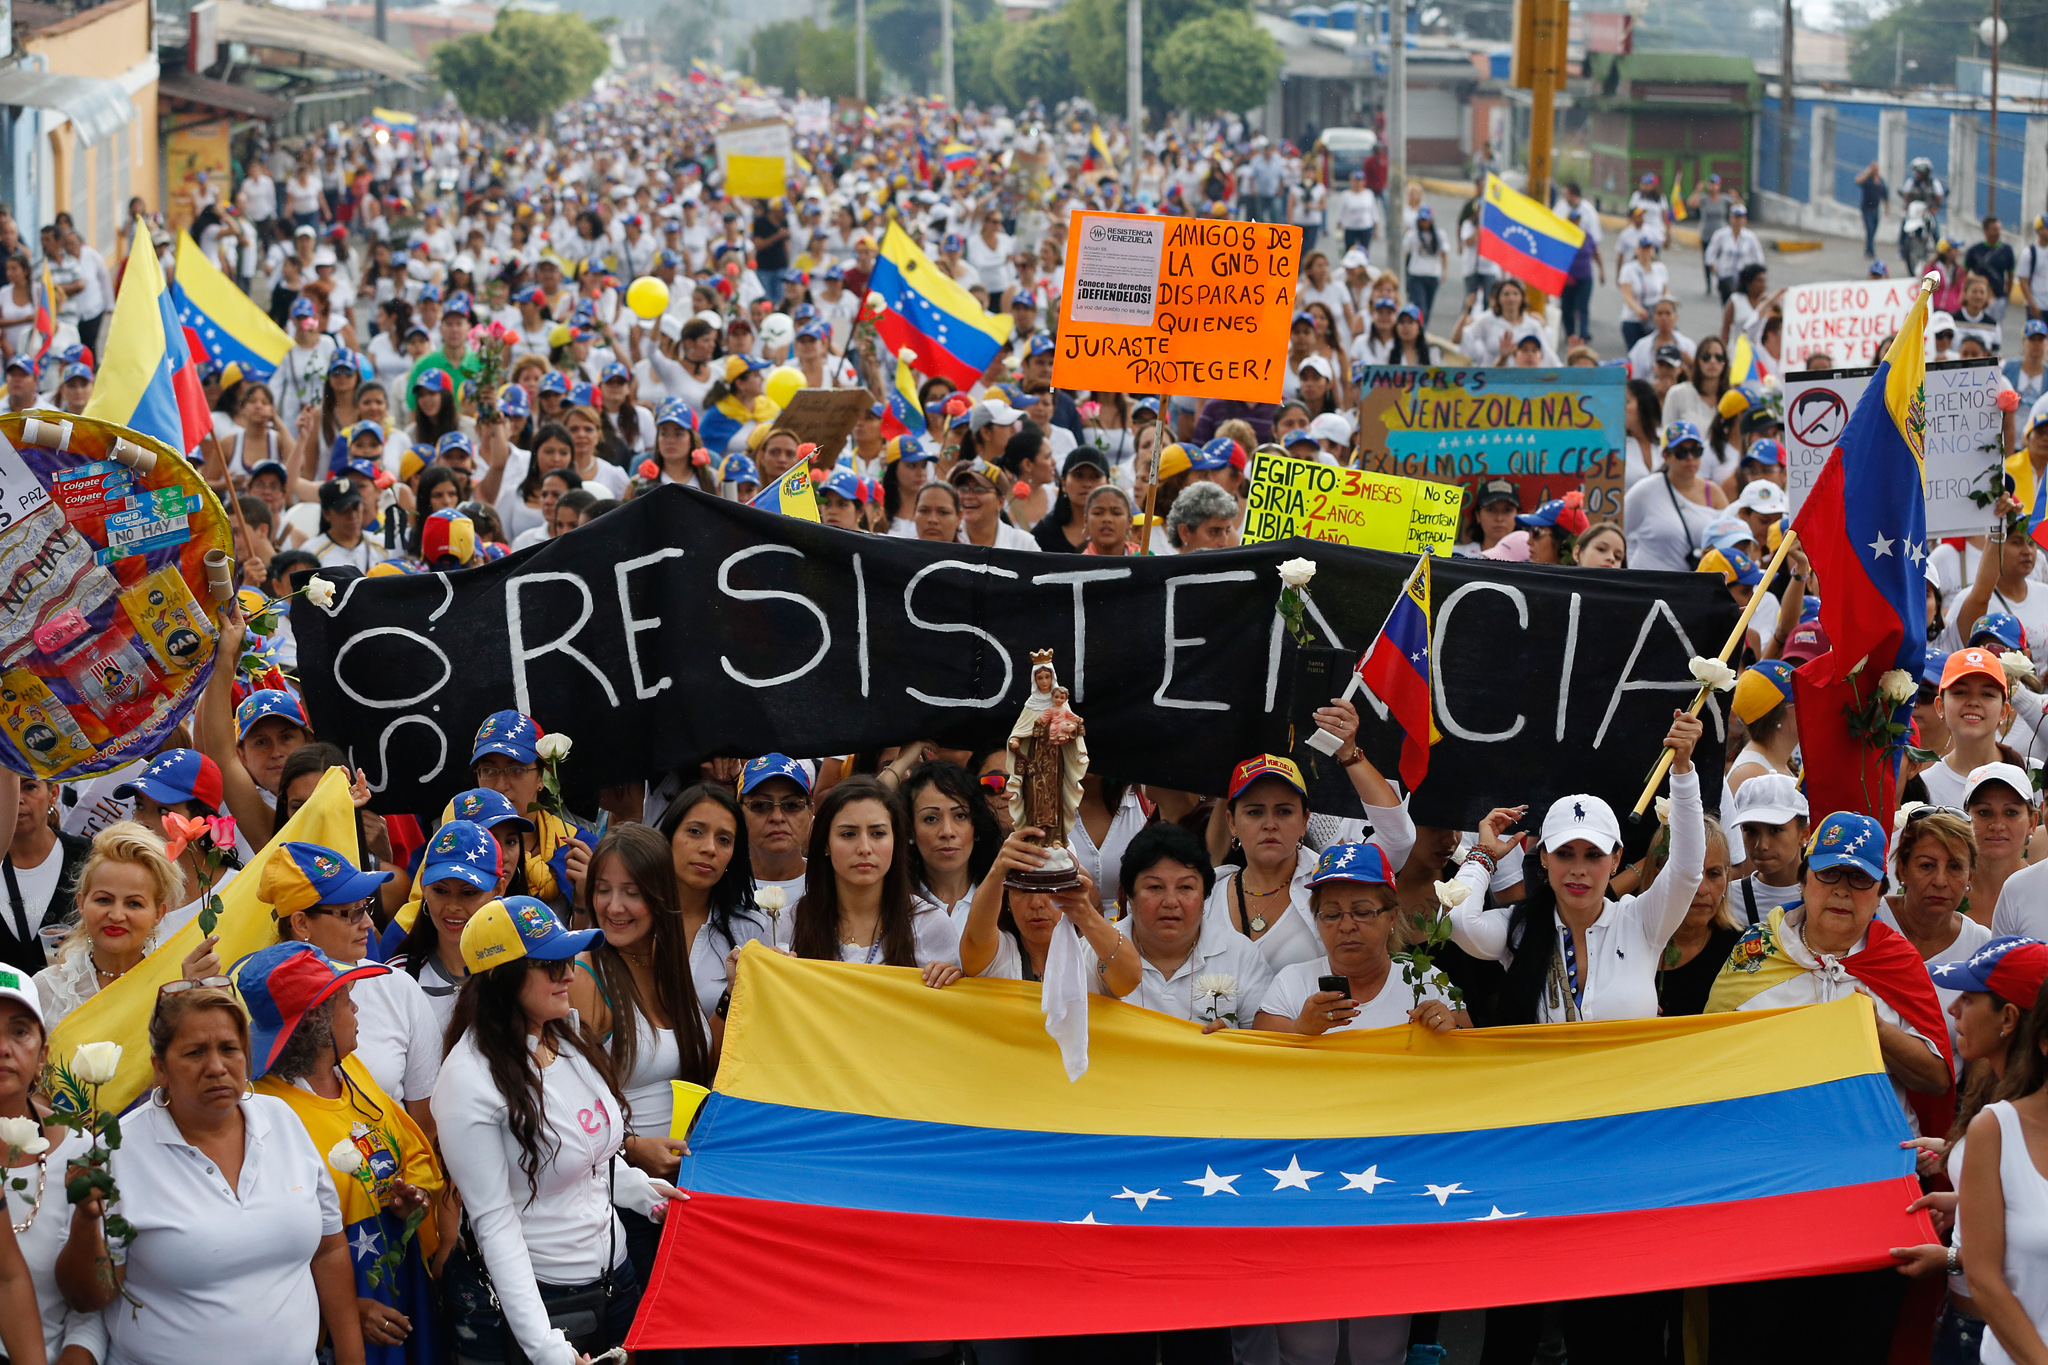 Venezuela: Chronicle of a Death Foretold